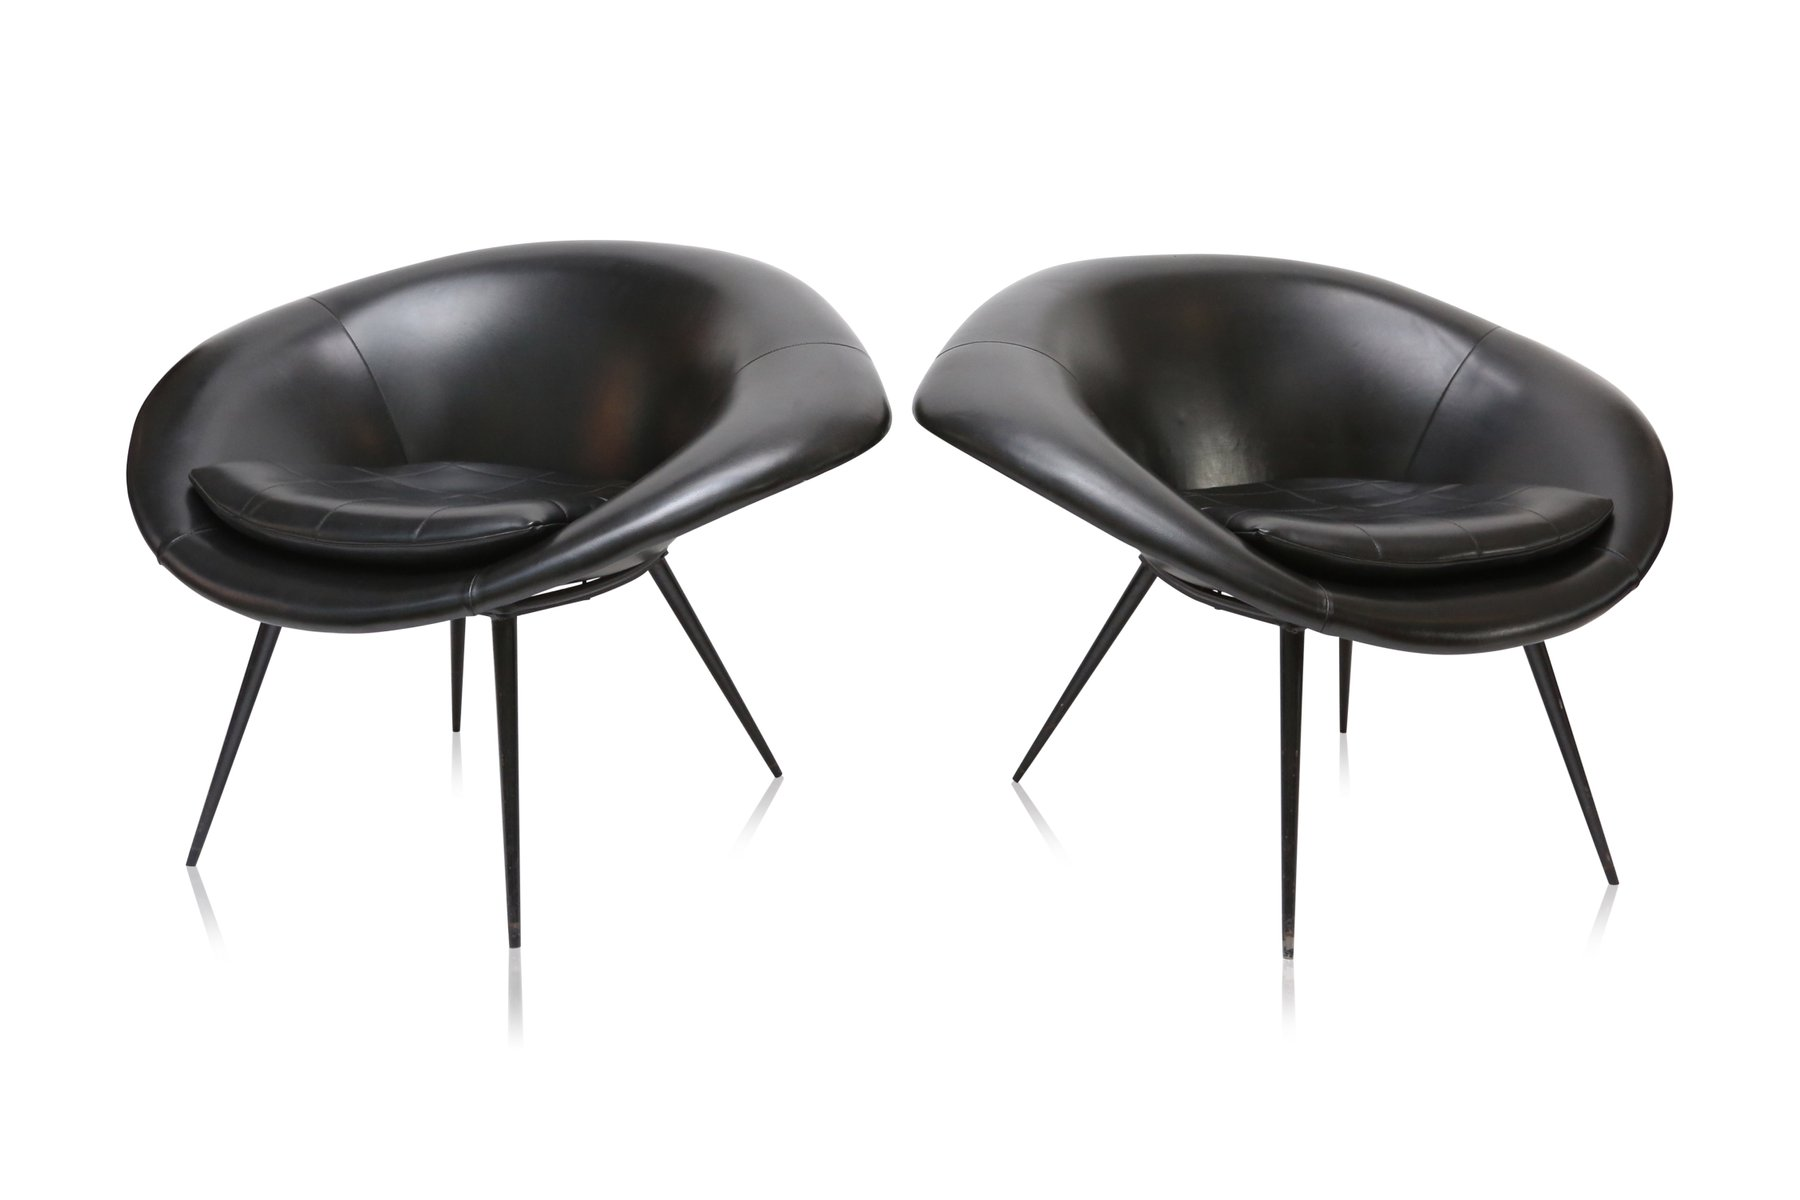 Space Age Furniture Space Age Oyster Chairs 1960s Set Of 2 For Sale At Pamono